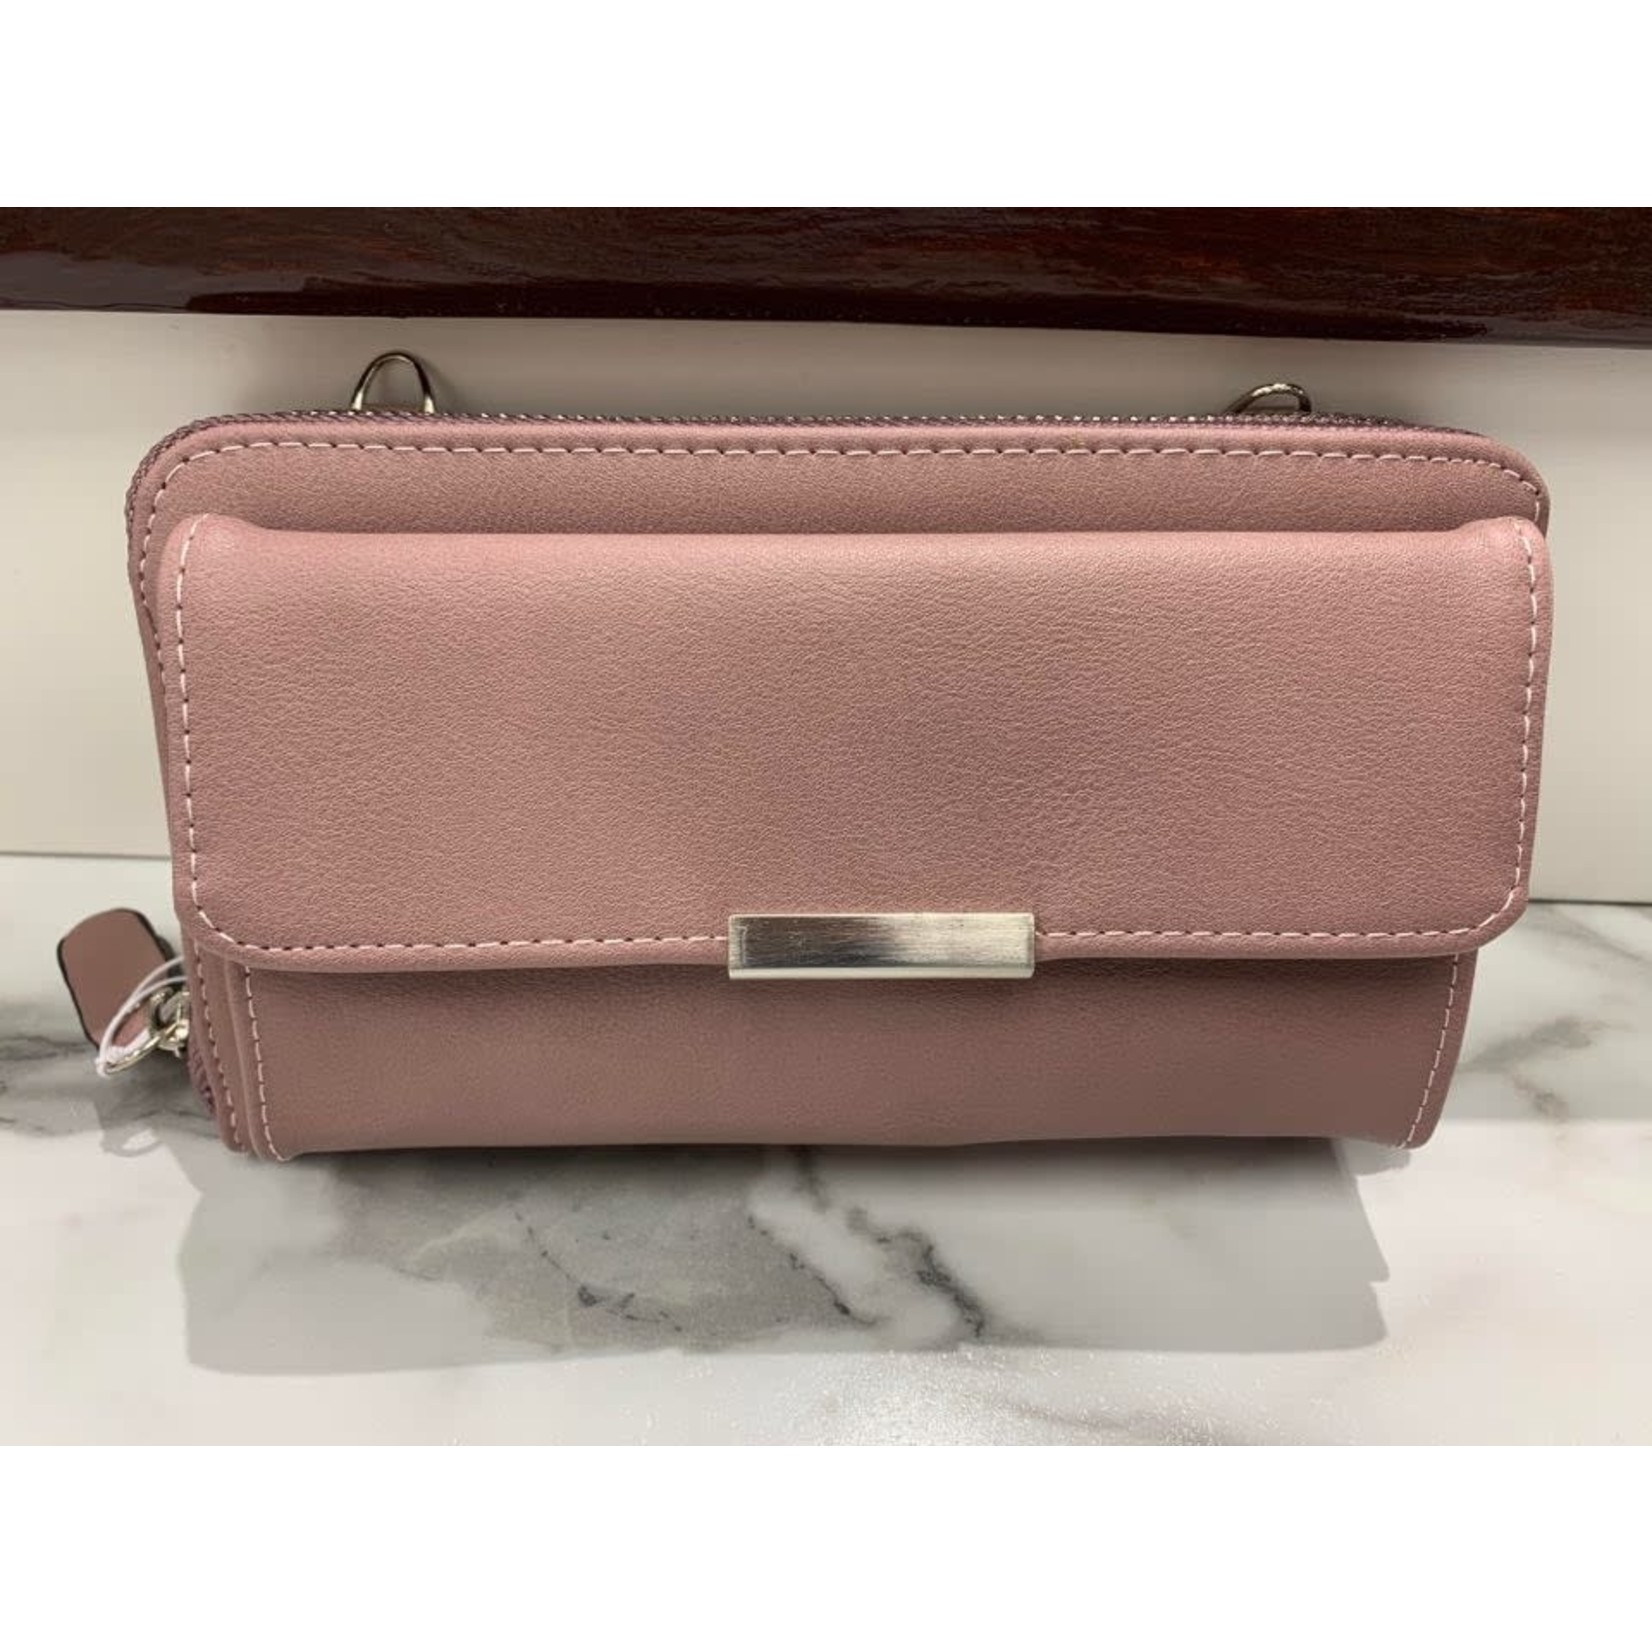 Caracol Blush 2 in 1 Wallet/Purse